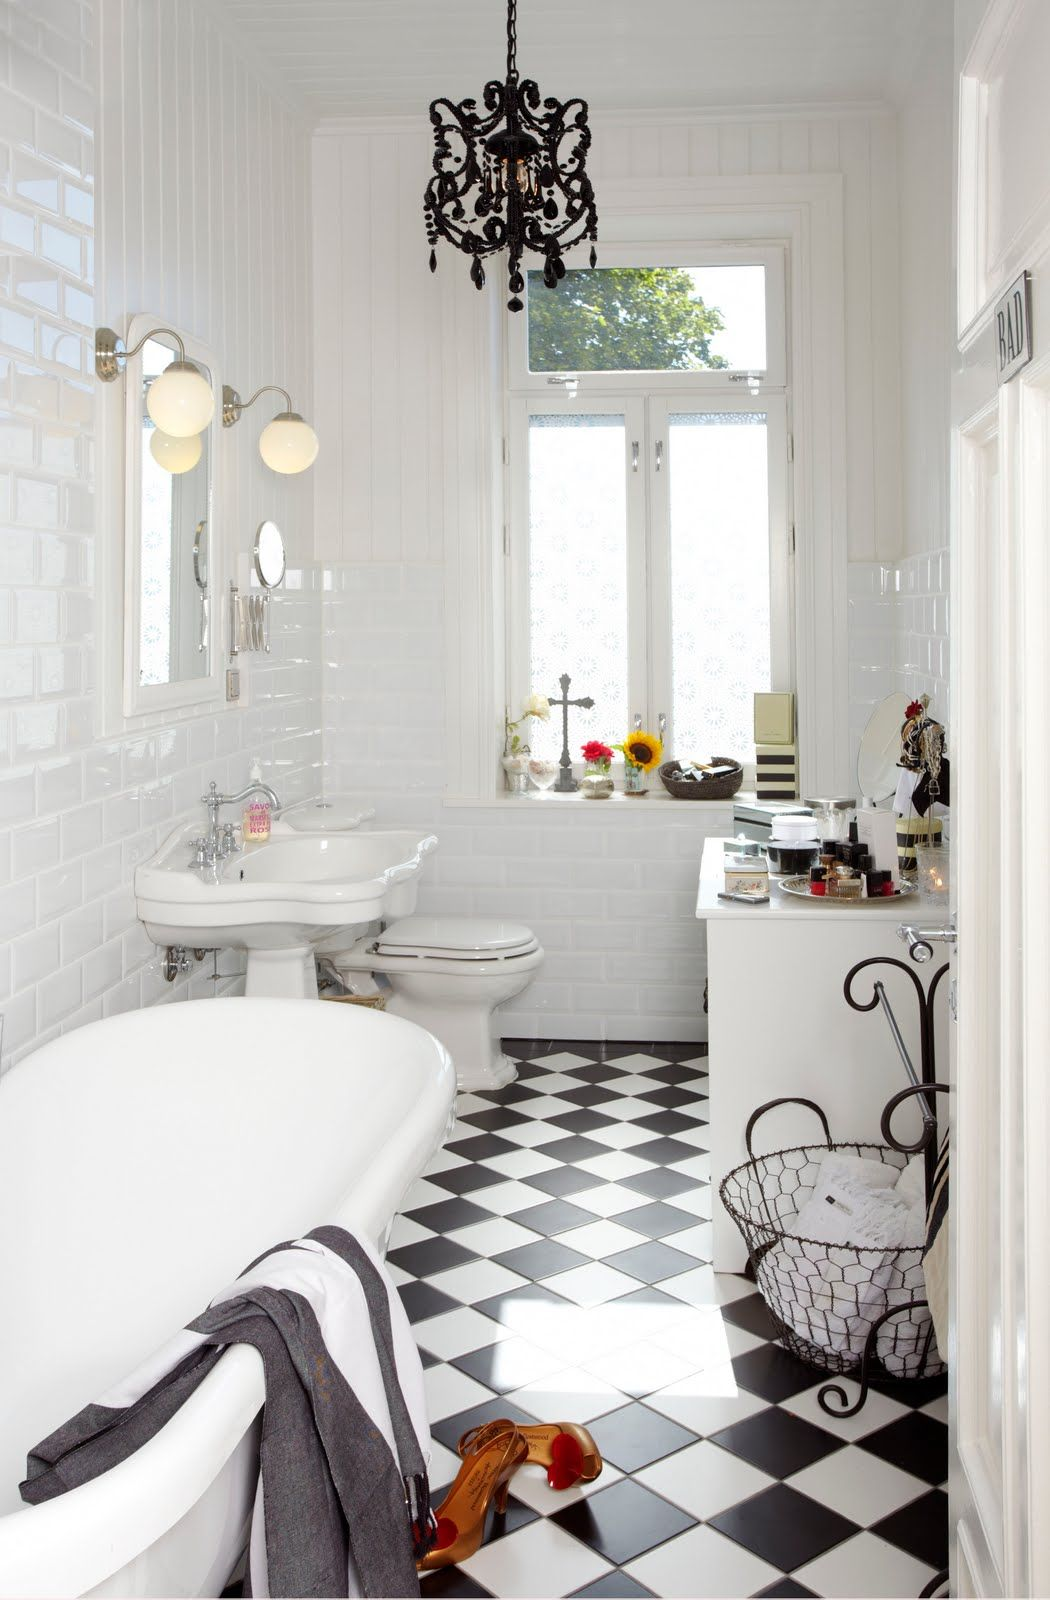 Vintage yellow tile bathroom - I Love Black And White